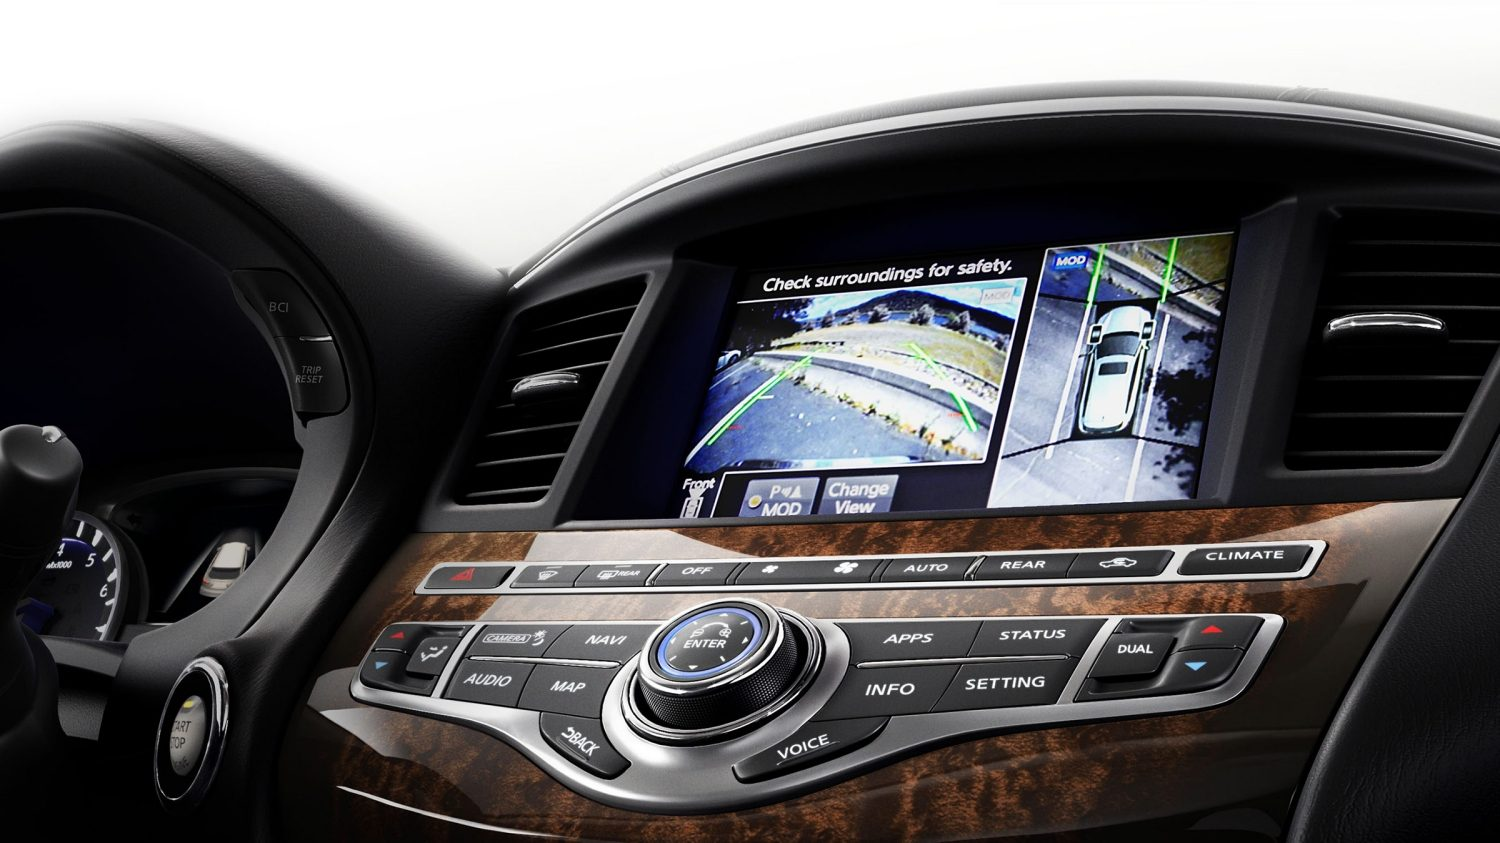 2018 INFINITI QX60 Crossover Around View Monitor